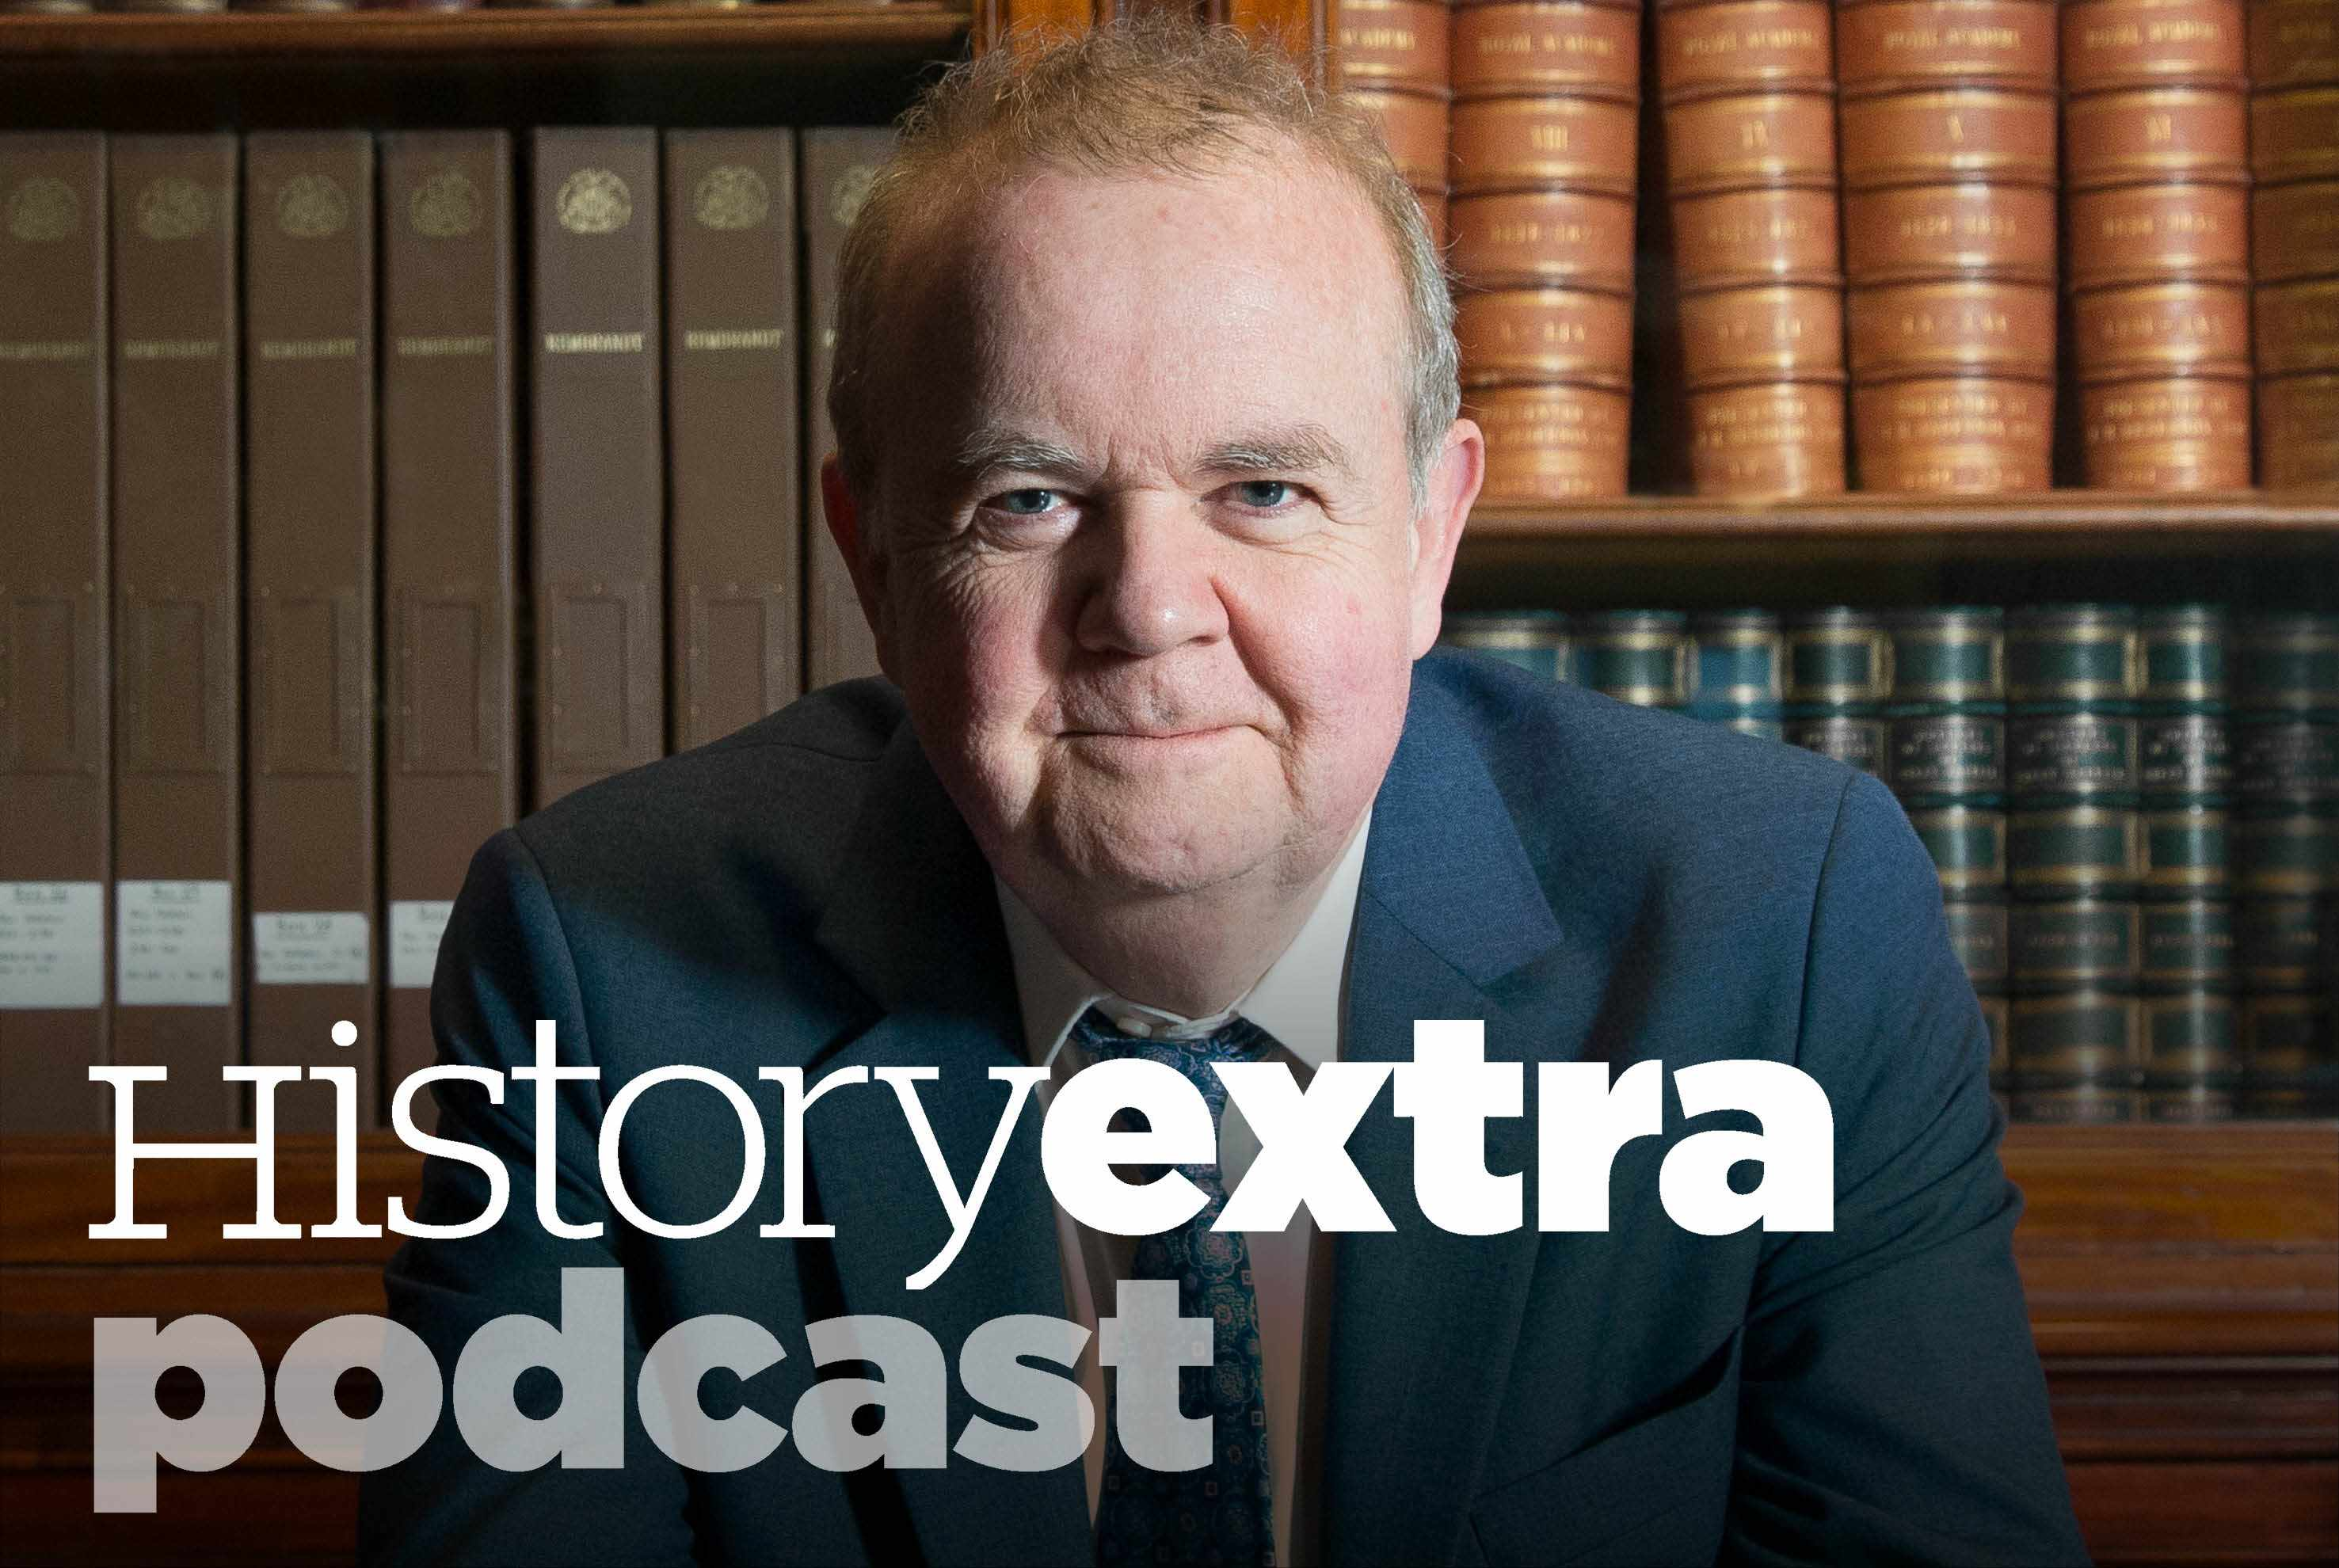 Ian Hislop (Photo by J.Fernandes/D.Hubbard © Trustees of the British Museum)